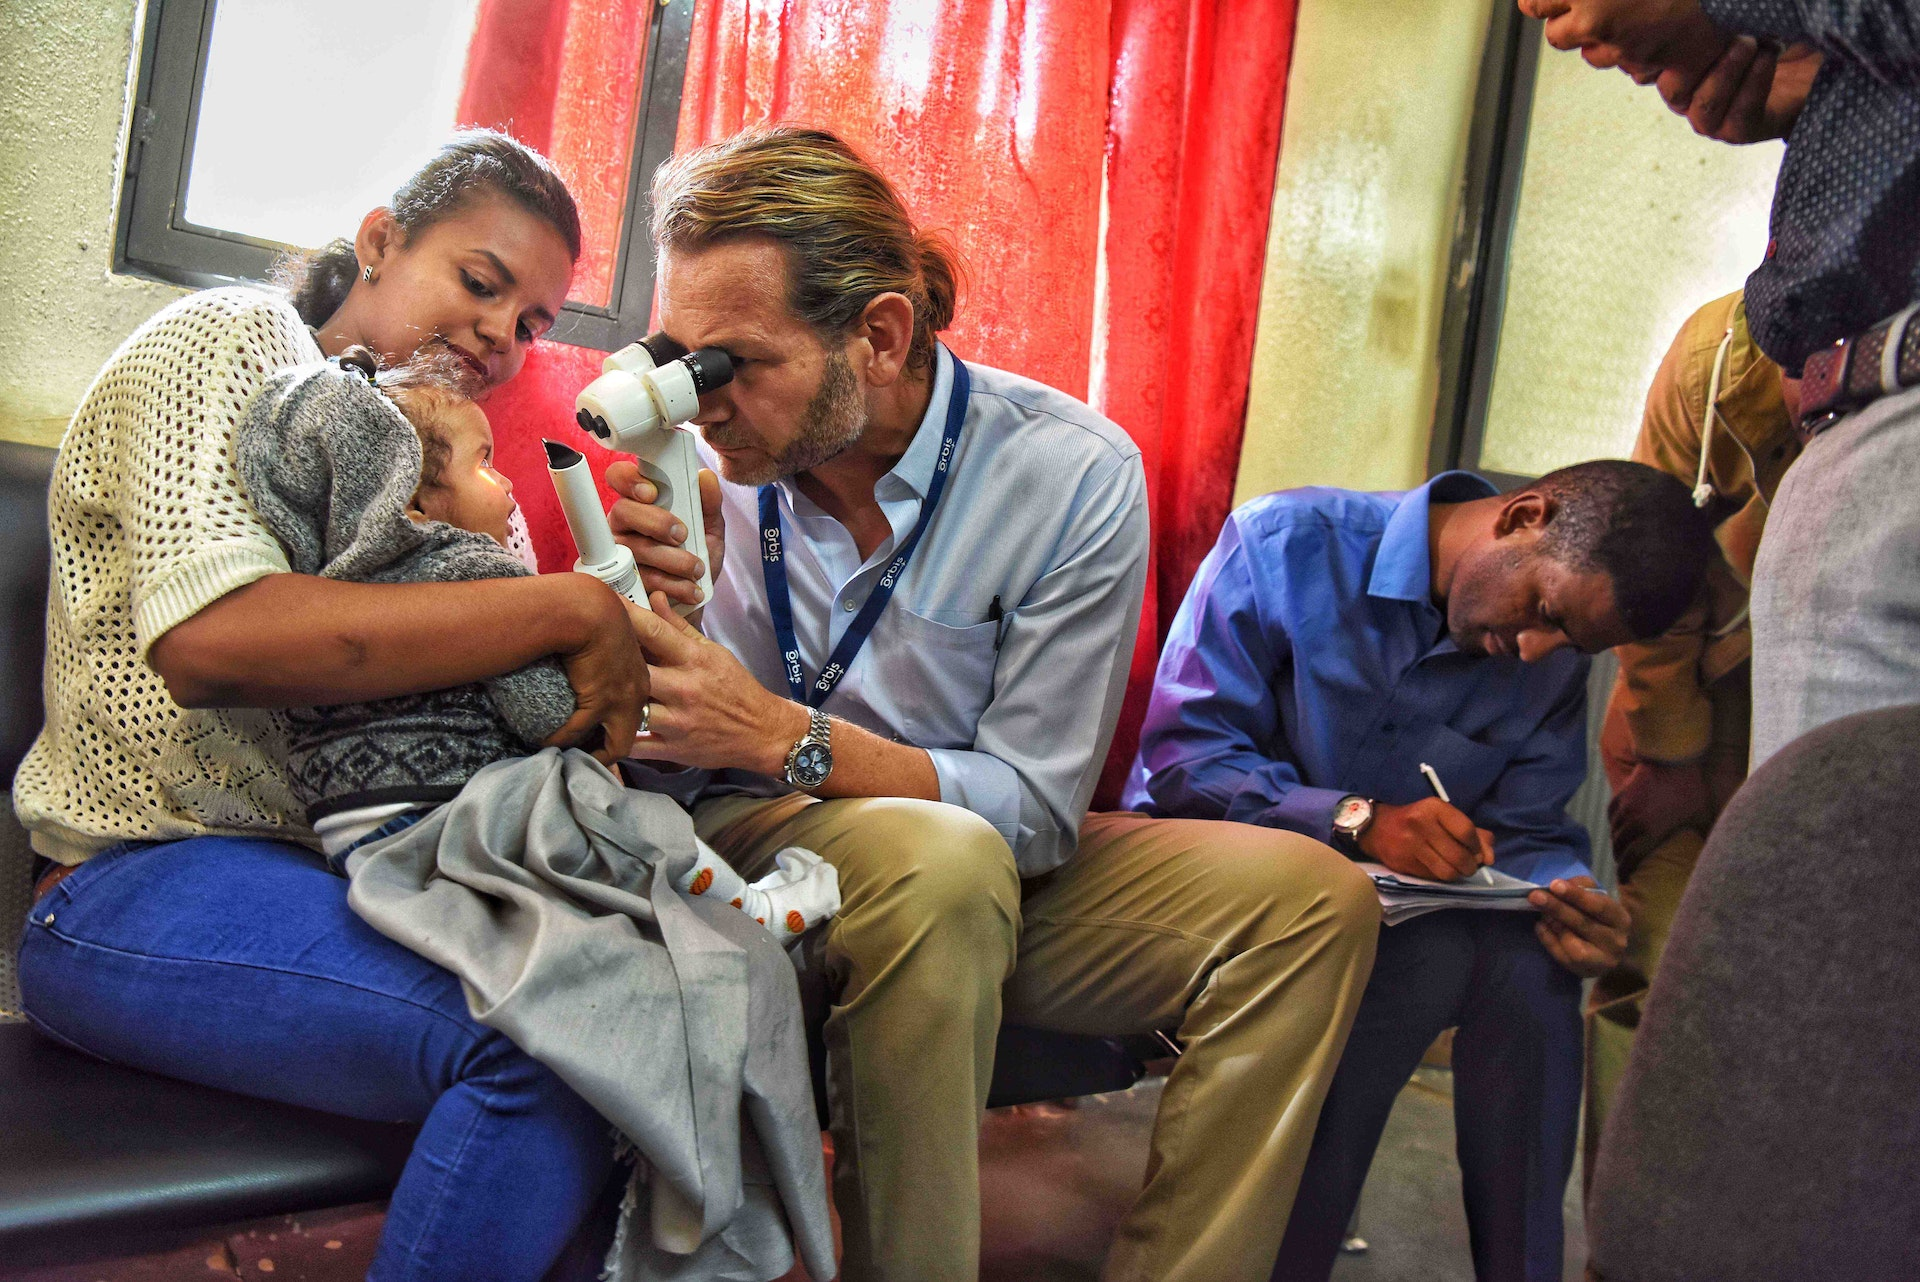 Volunteer Faculty Dr. Daniel Neely screening a baby in Ethiopia